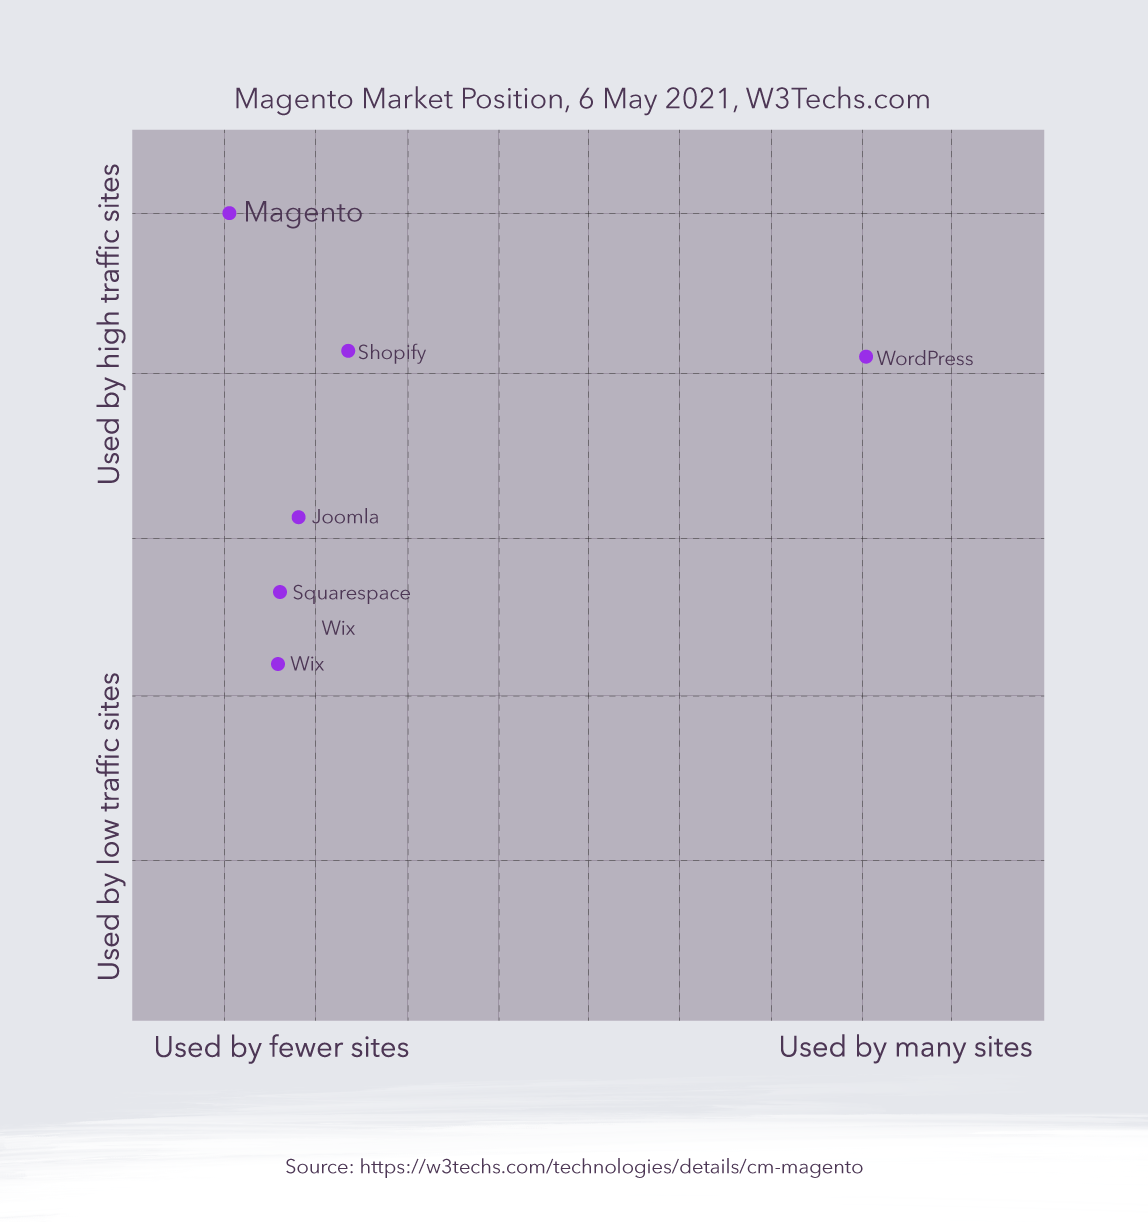 6 Reasons Why Magento Might Work For Your E-Commerce Site